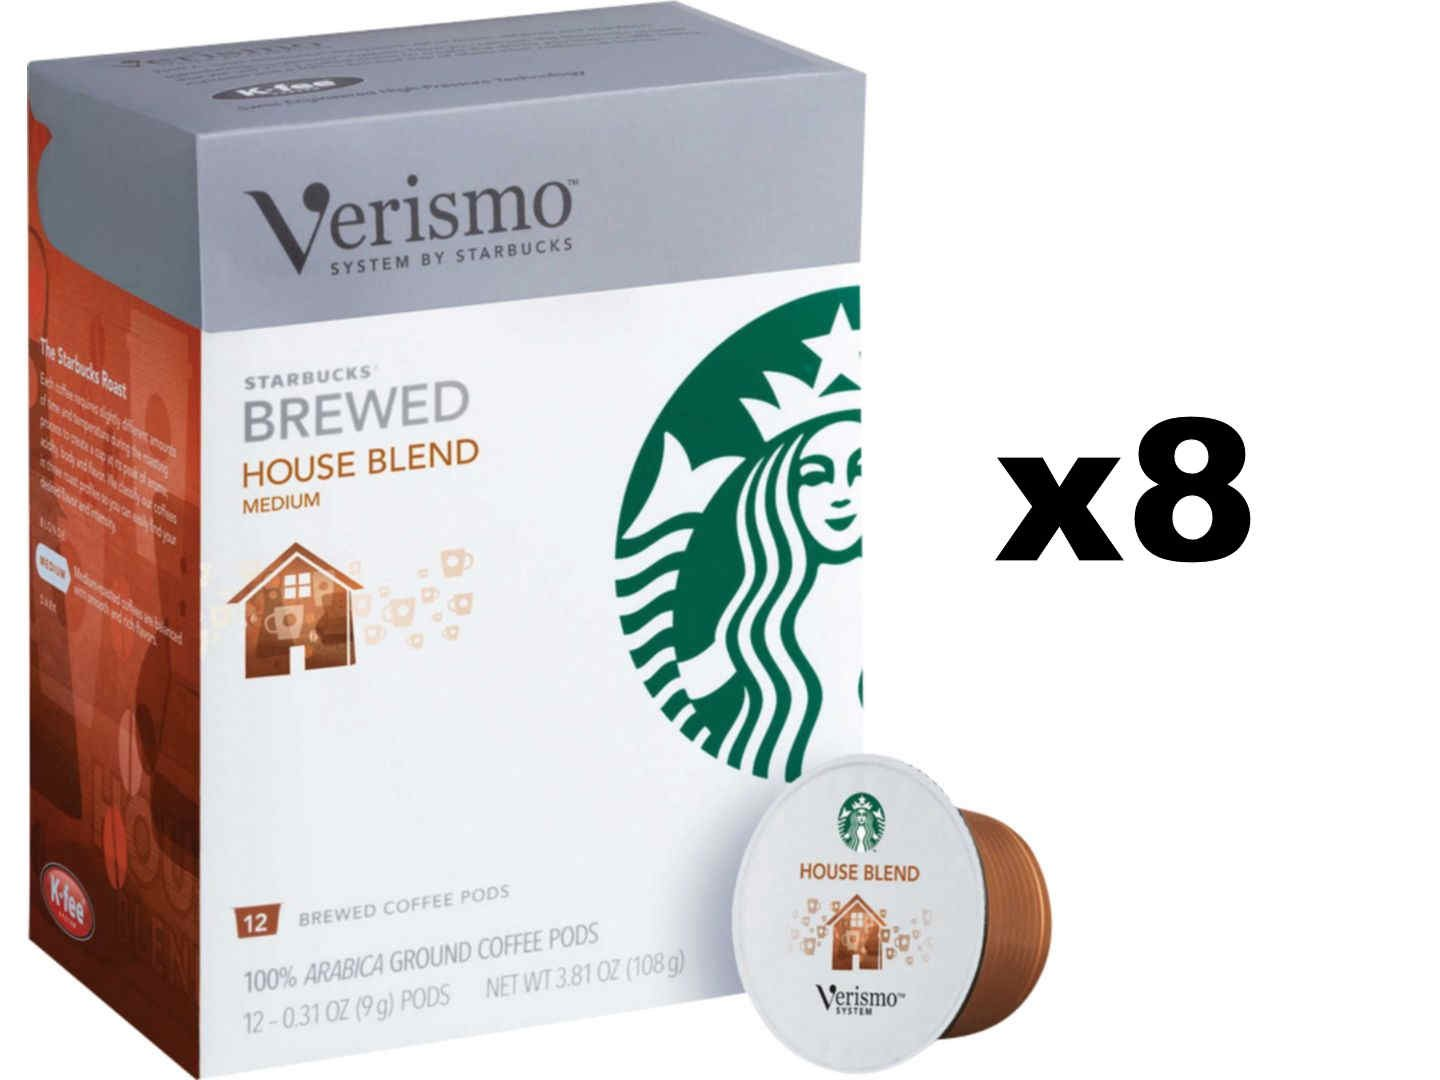 Starbucks House Blend Brewed Coffee Verismo Pods (96 Count)